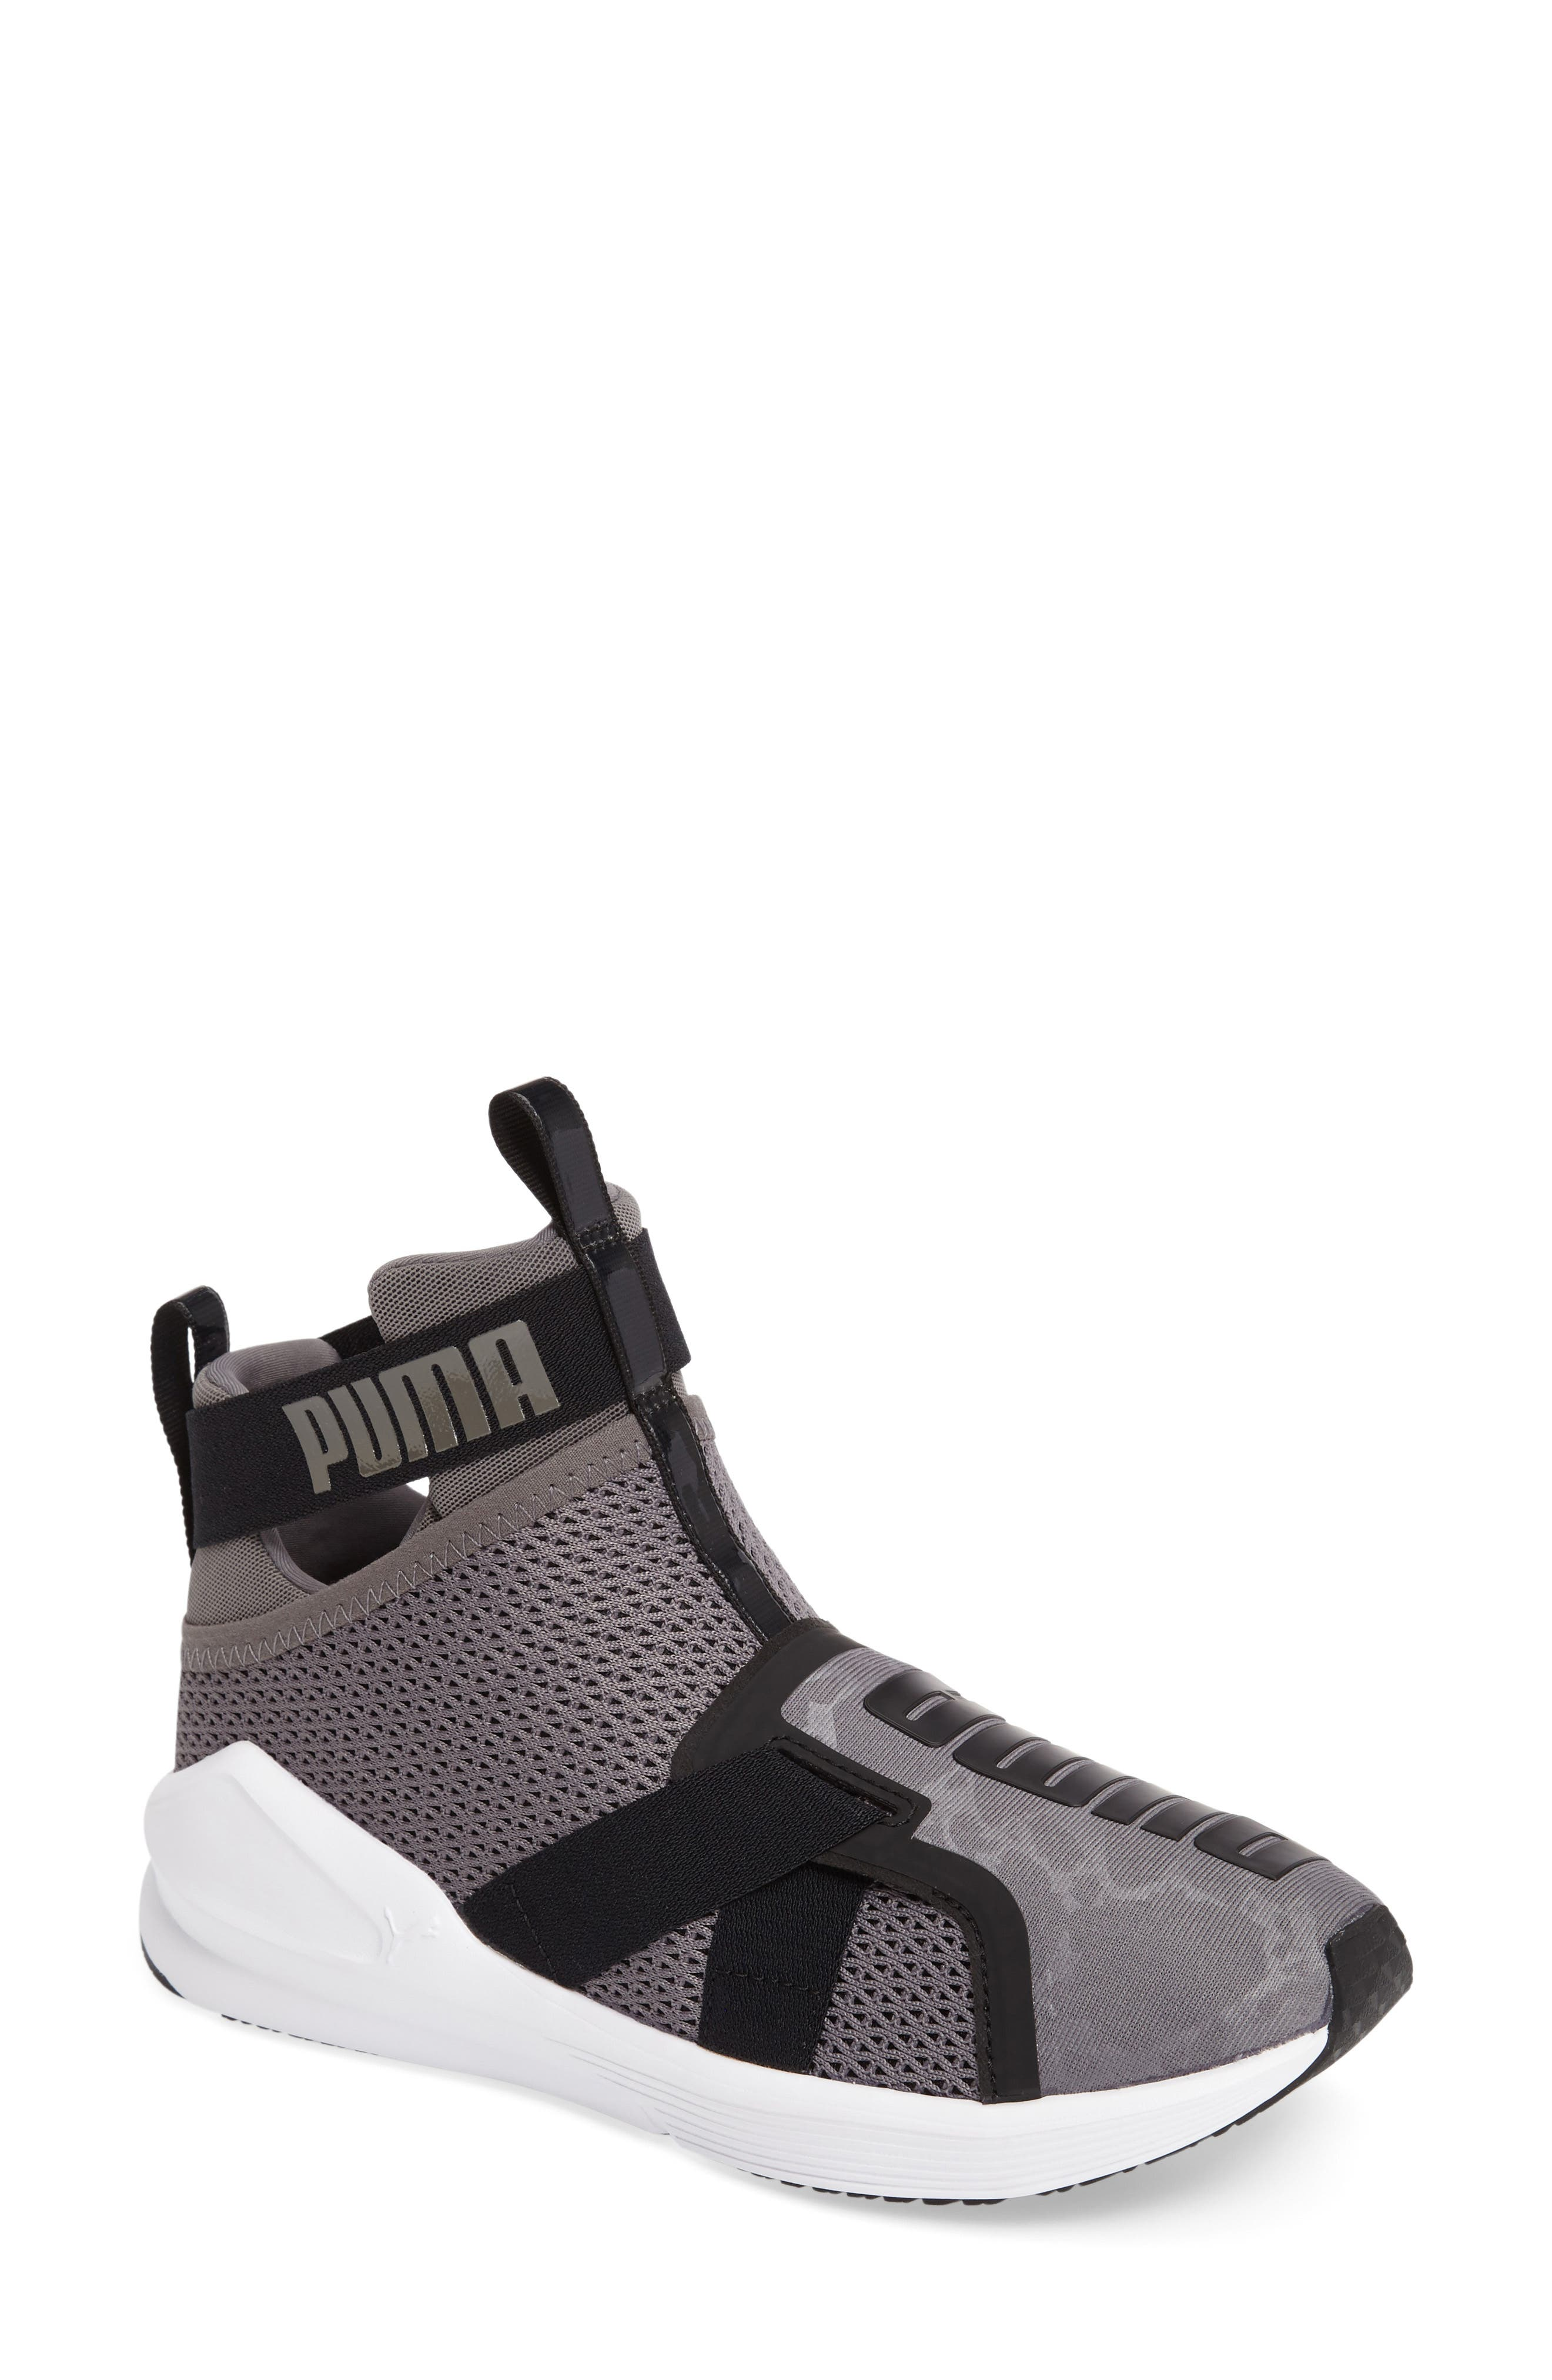 PUMA Fierce Strap Training Sneaker (Women)